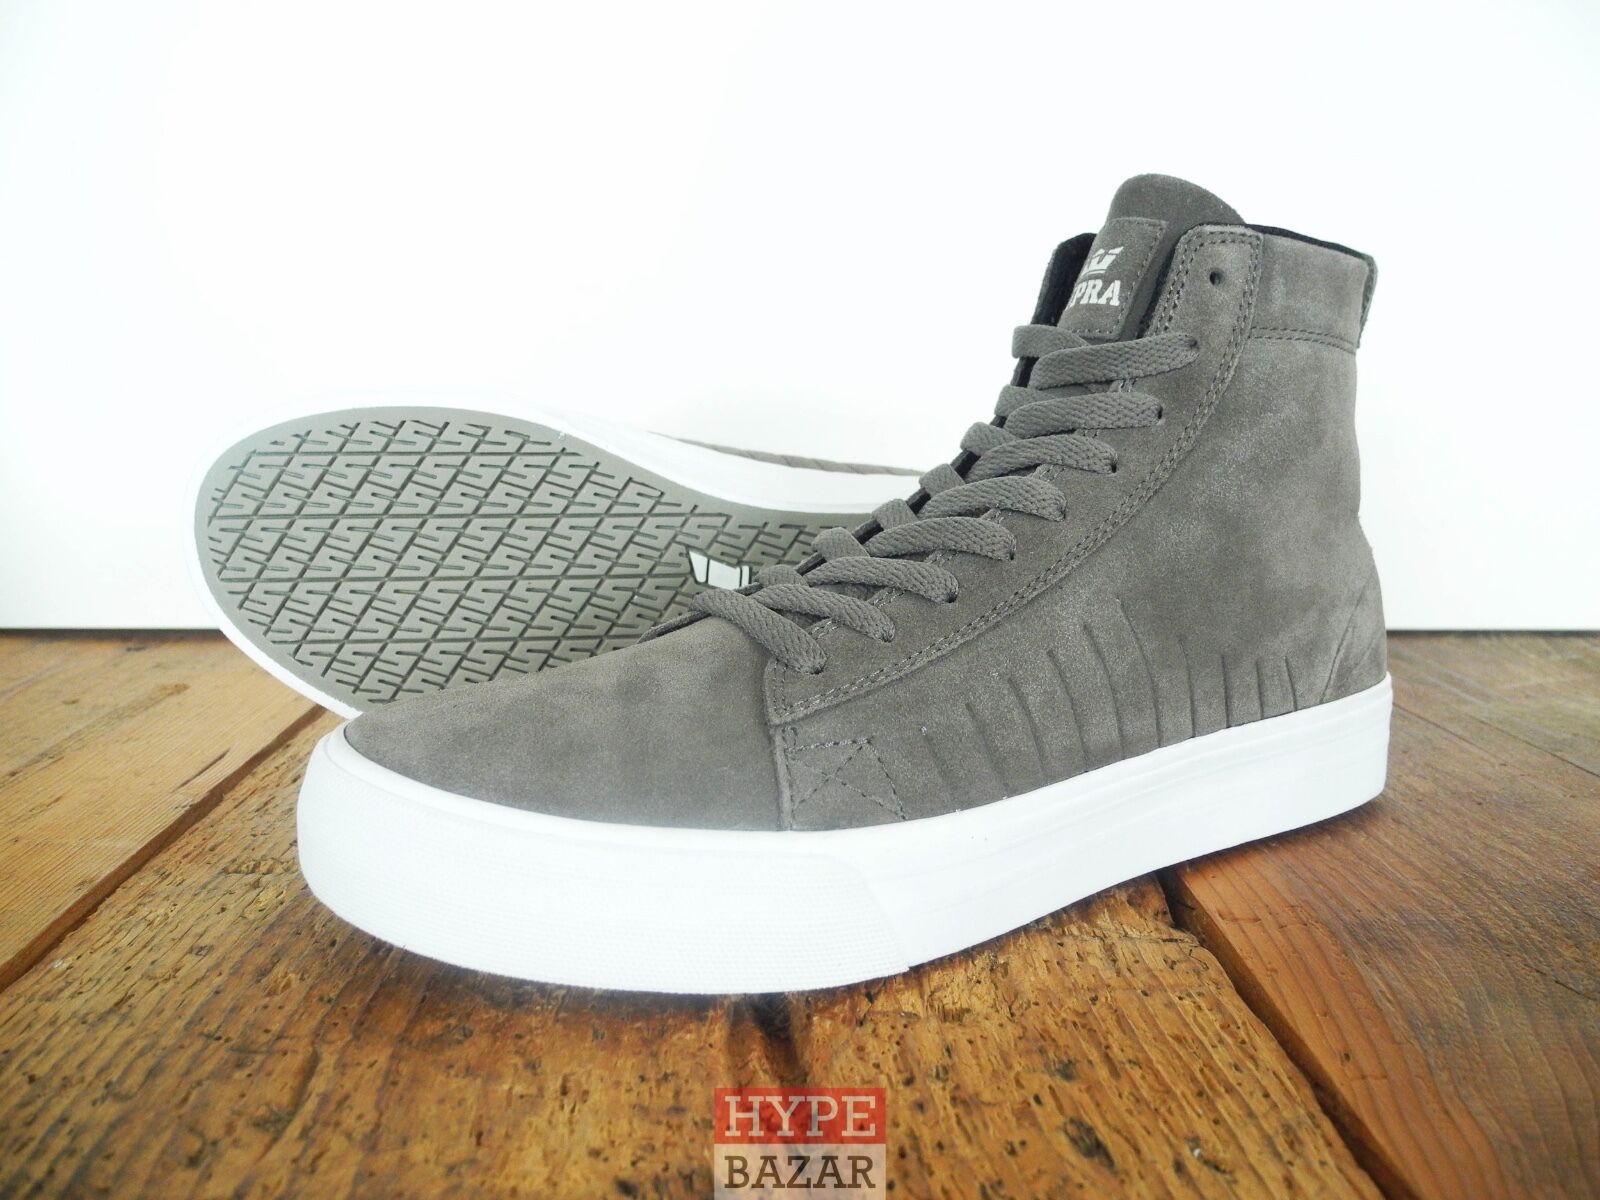 SUPRA FOOTWEAR HI-TOP SNEAKER NEU GREY GR: US SHOES 9 EUR 42.5 SUPRA SHOES US 828f1f